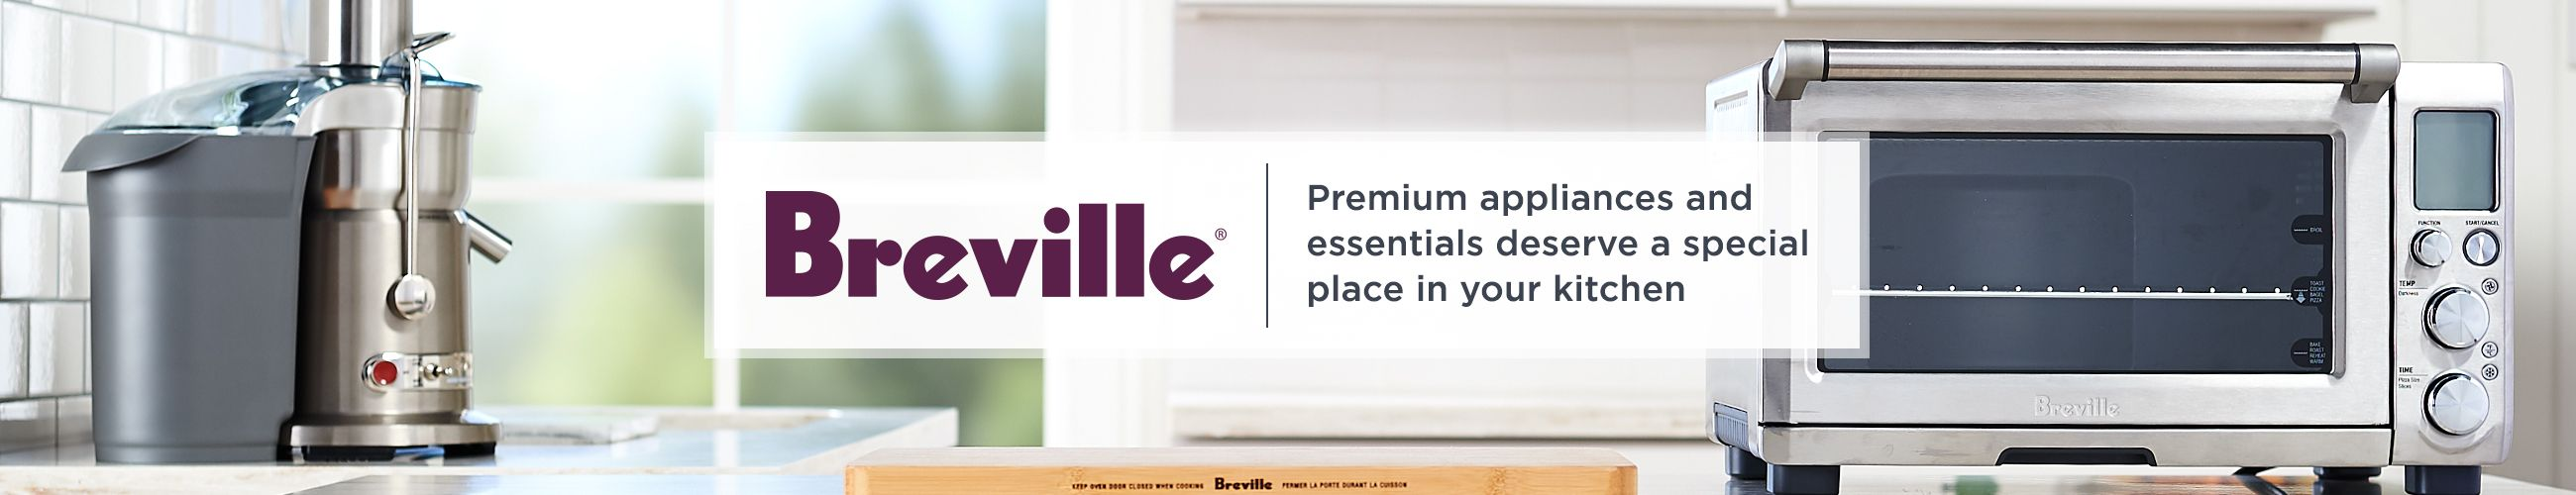 Breville. Premium appliances and essentials deserve a special place in your kitchen